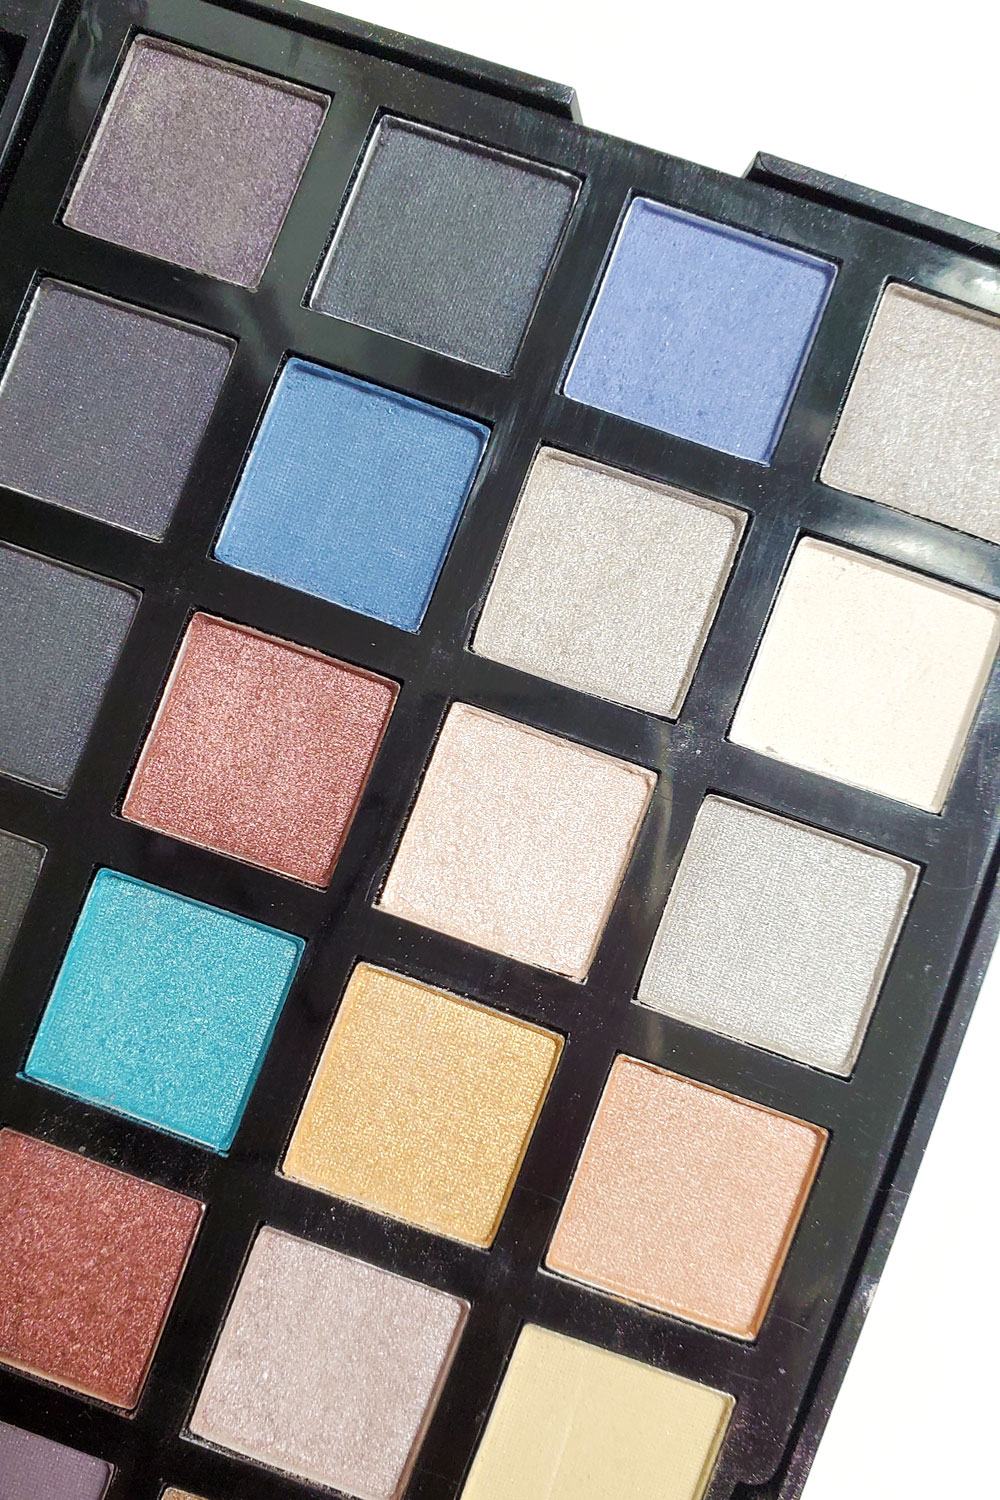 $50 makeup routine shimmery eye shadow